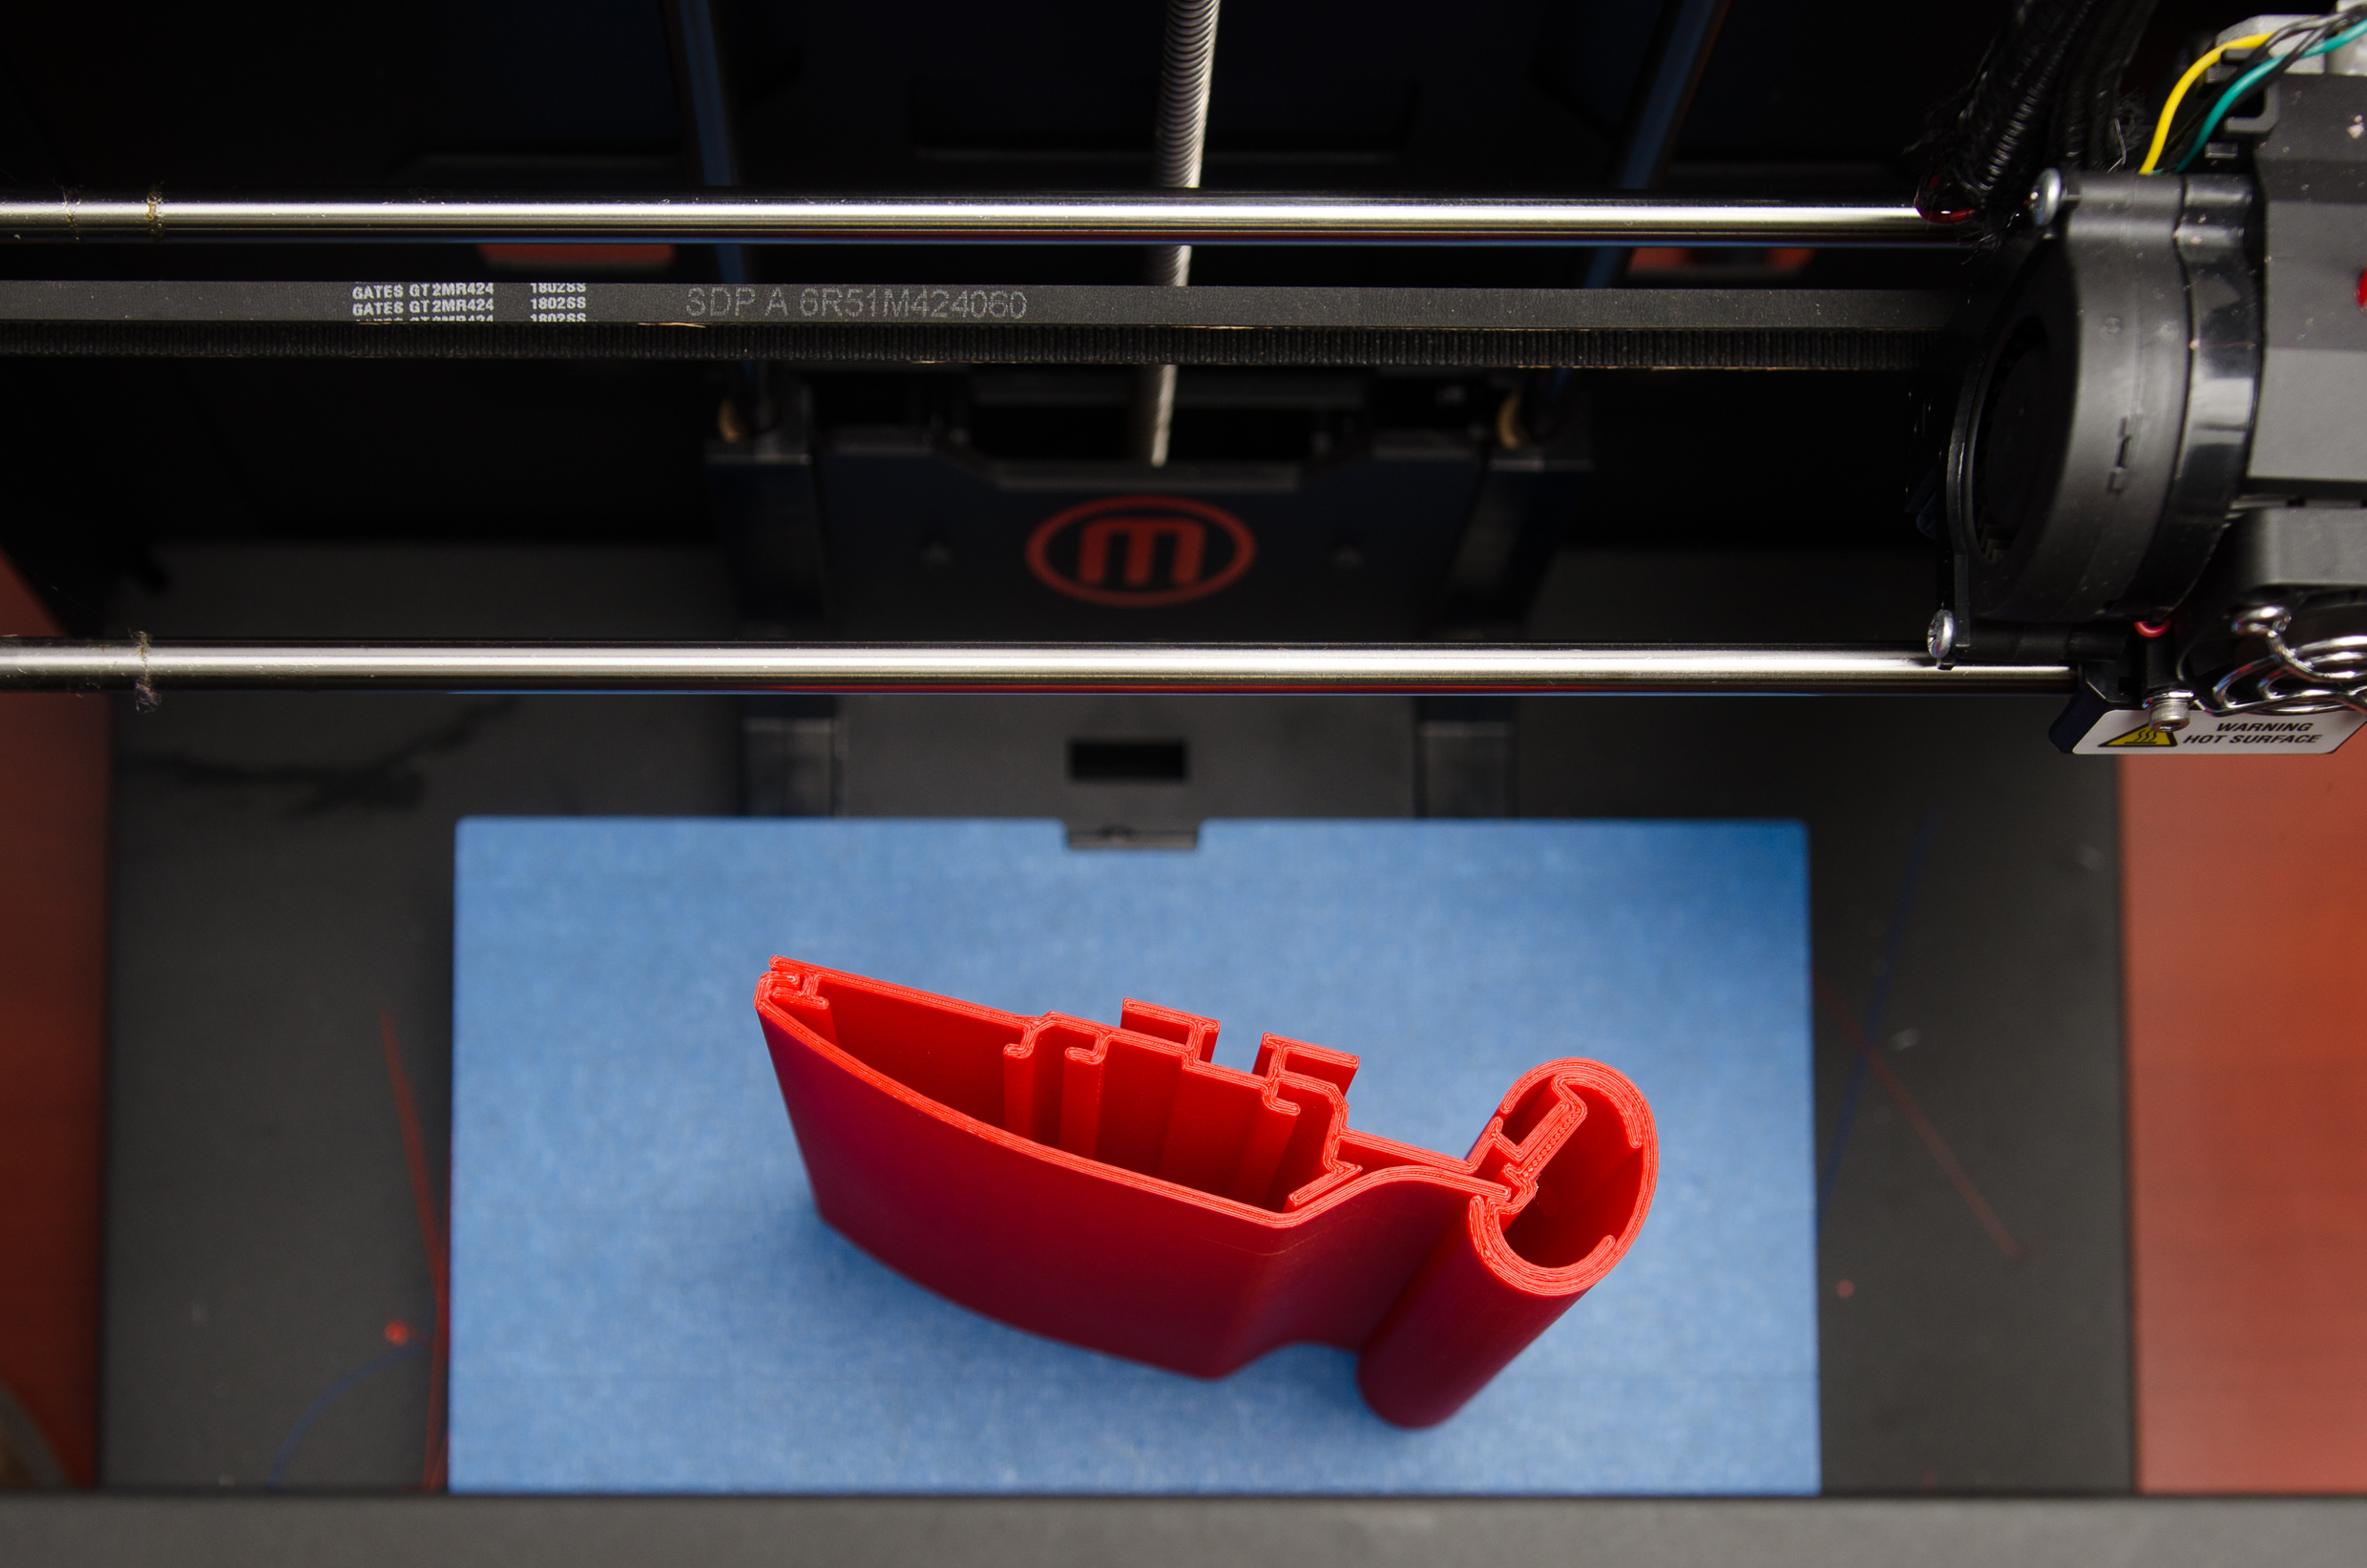 Red plastic prototype of a handrail sitting next to a 3D printer